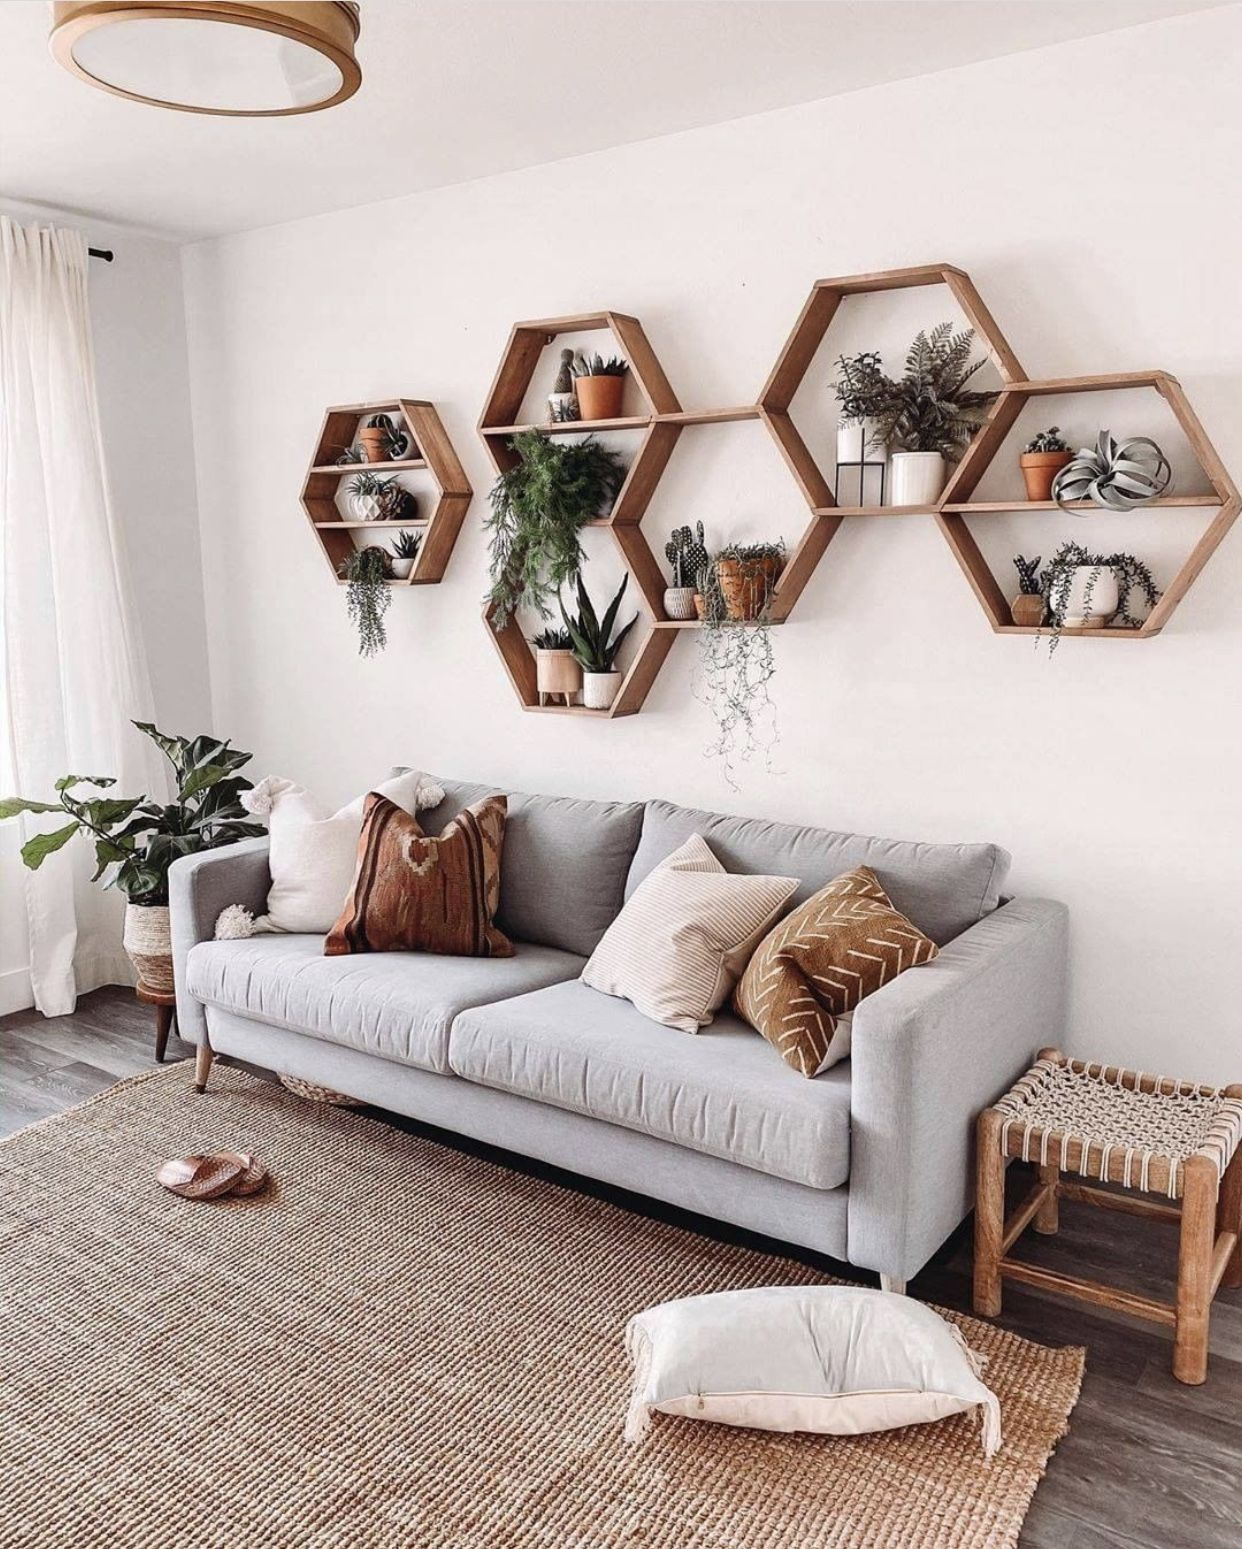 Pin By Fashion Lover On Home Decor Wall Decor Living Room Home Decor Budget Home Decorating Wall decor living room home